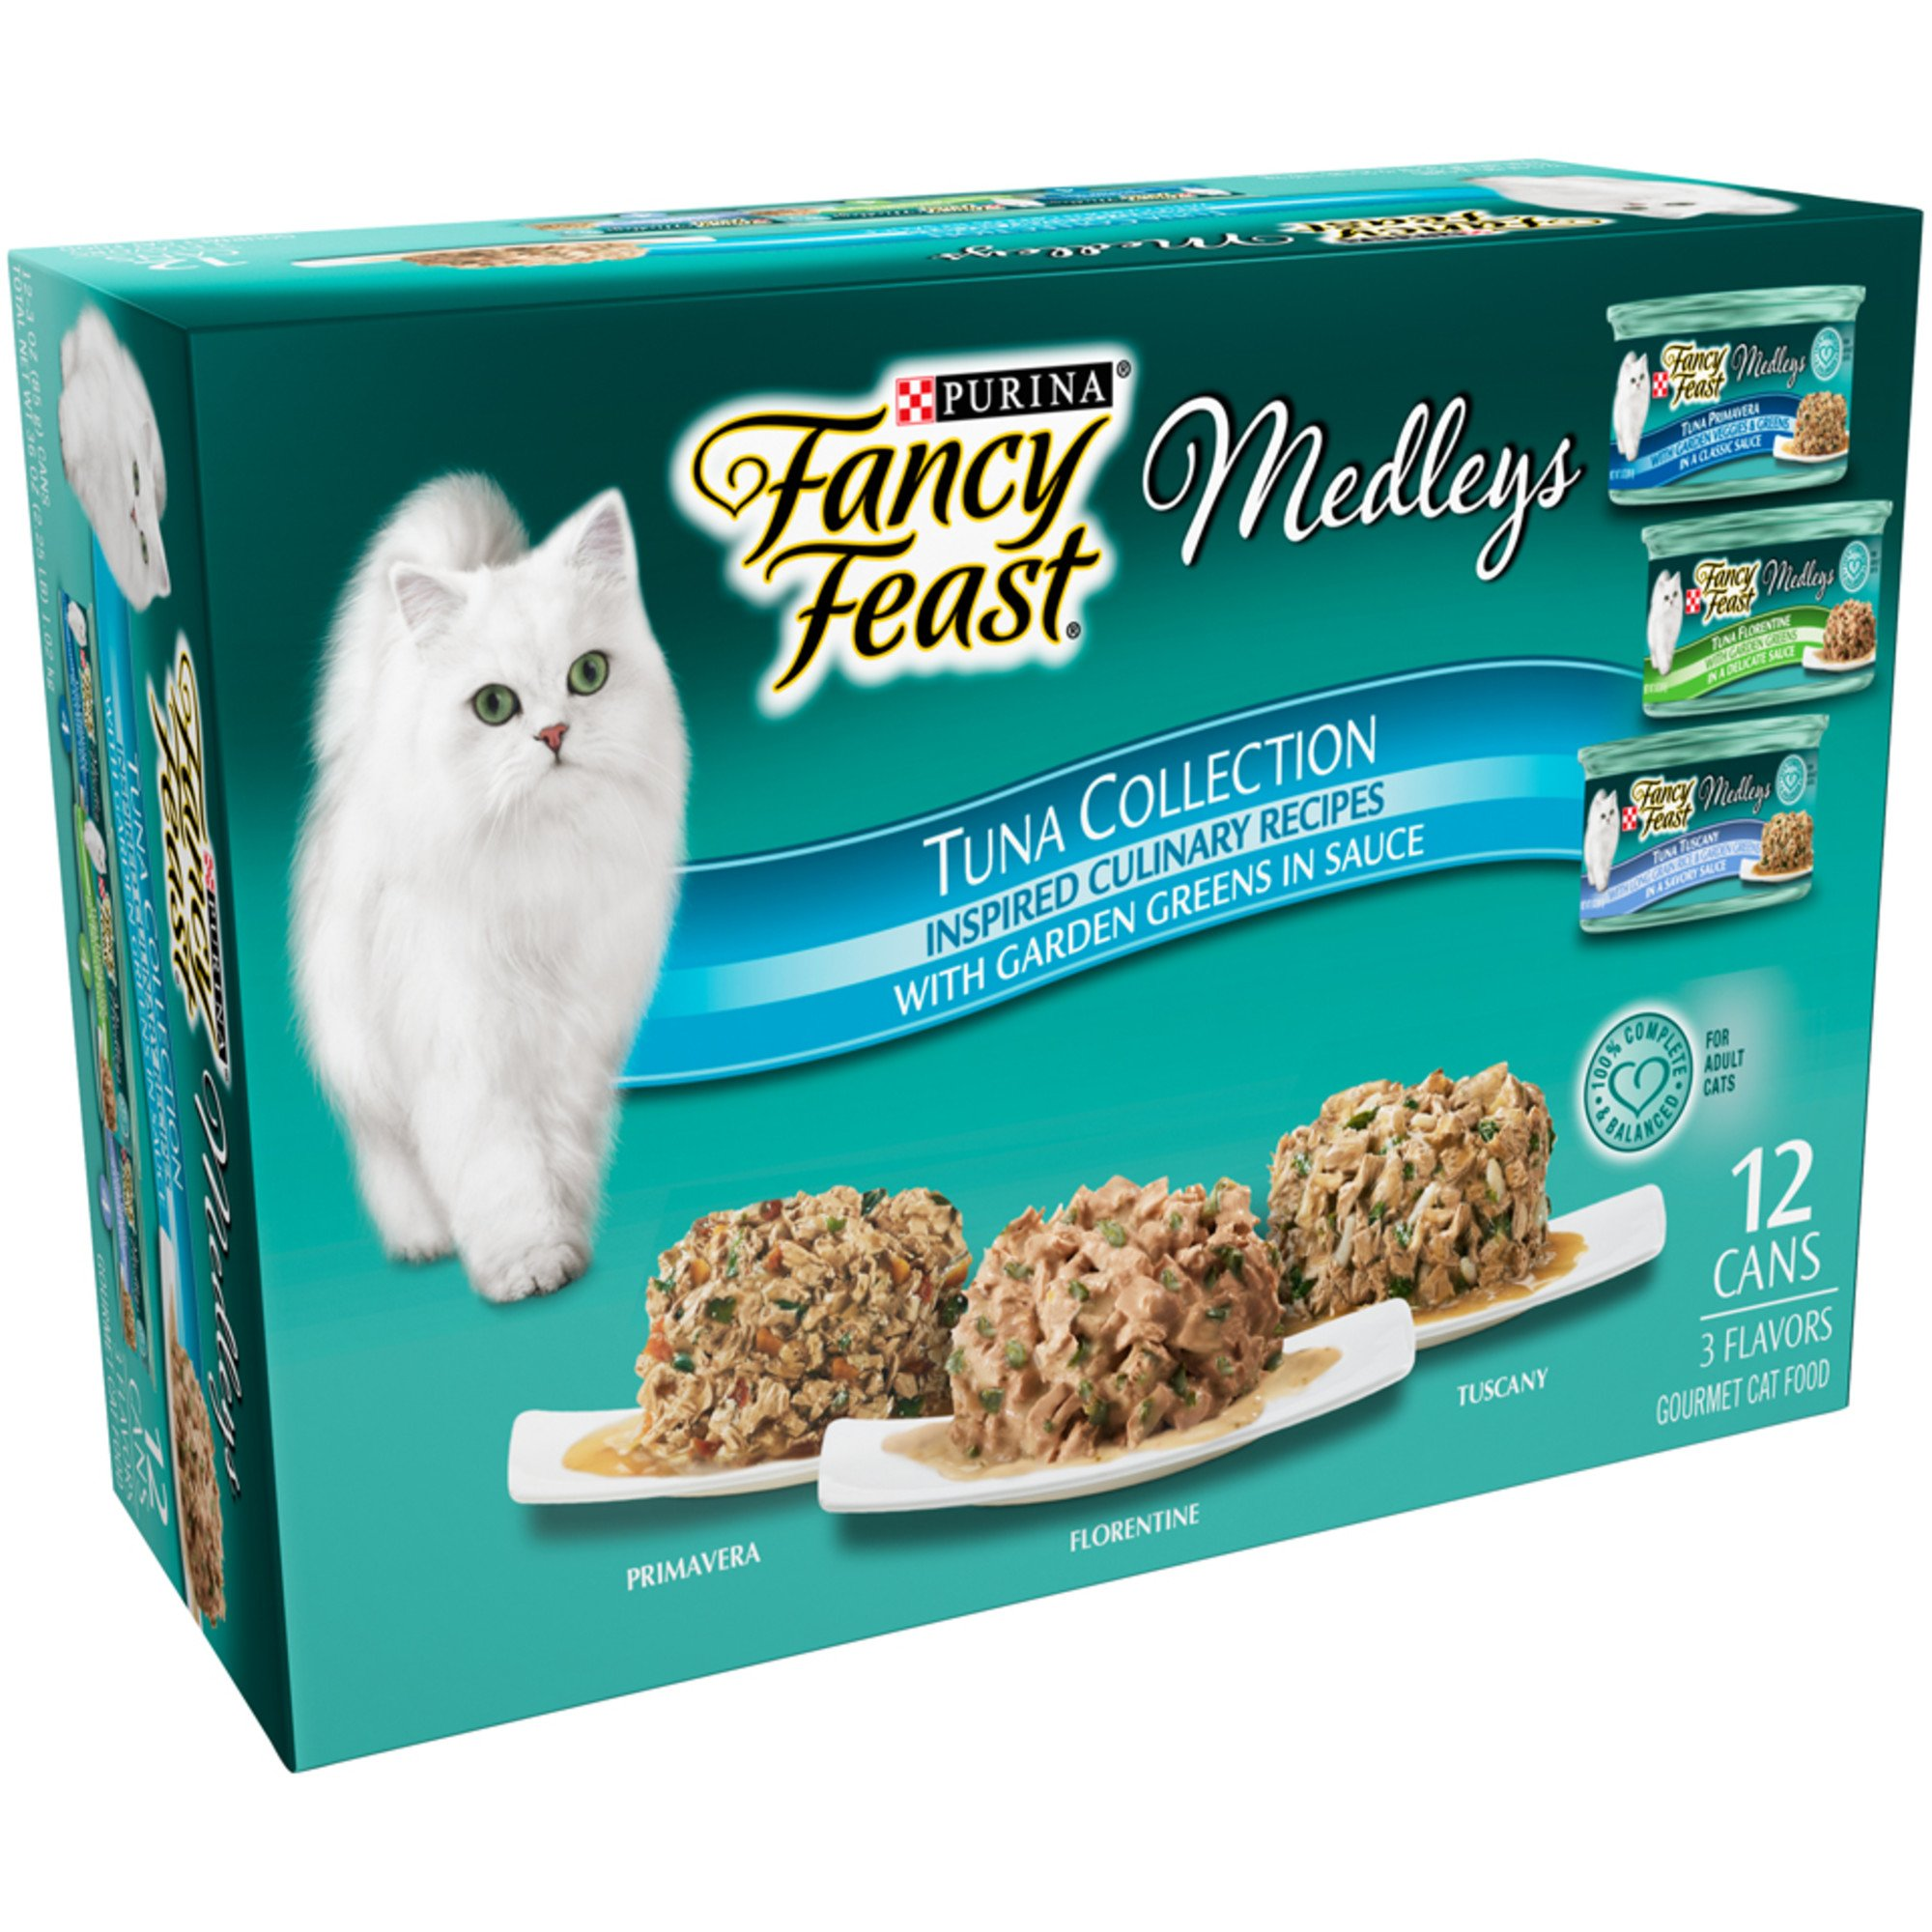 Fancy Feast Elegant Medleys Tuna Recipe Variety Collection Adult Canned Cat Food